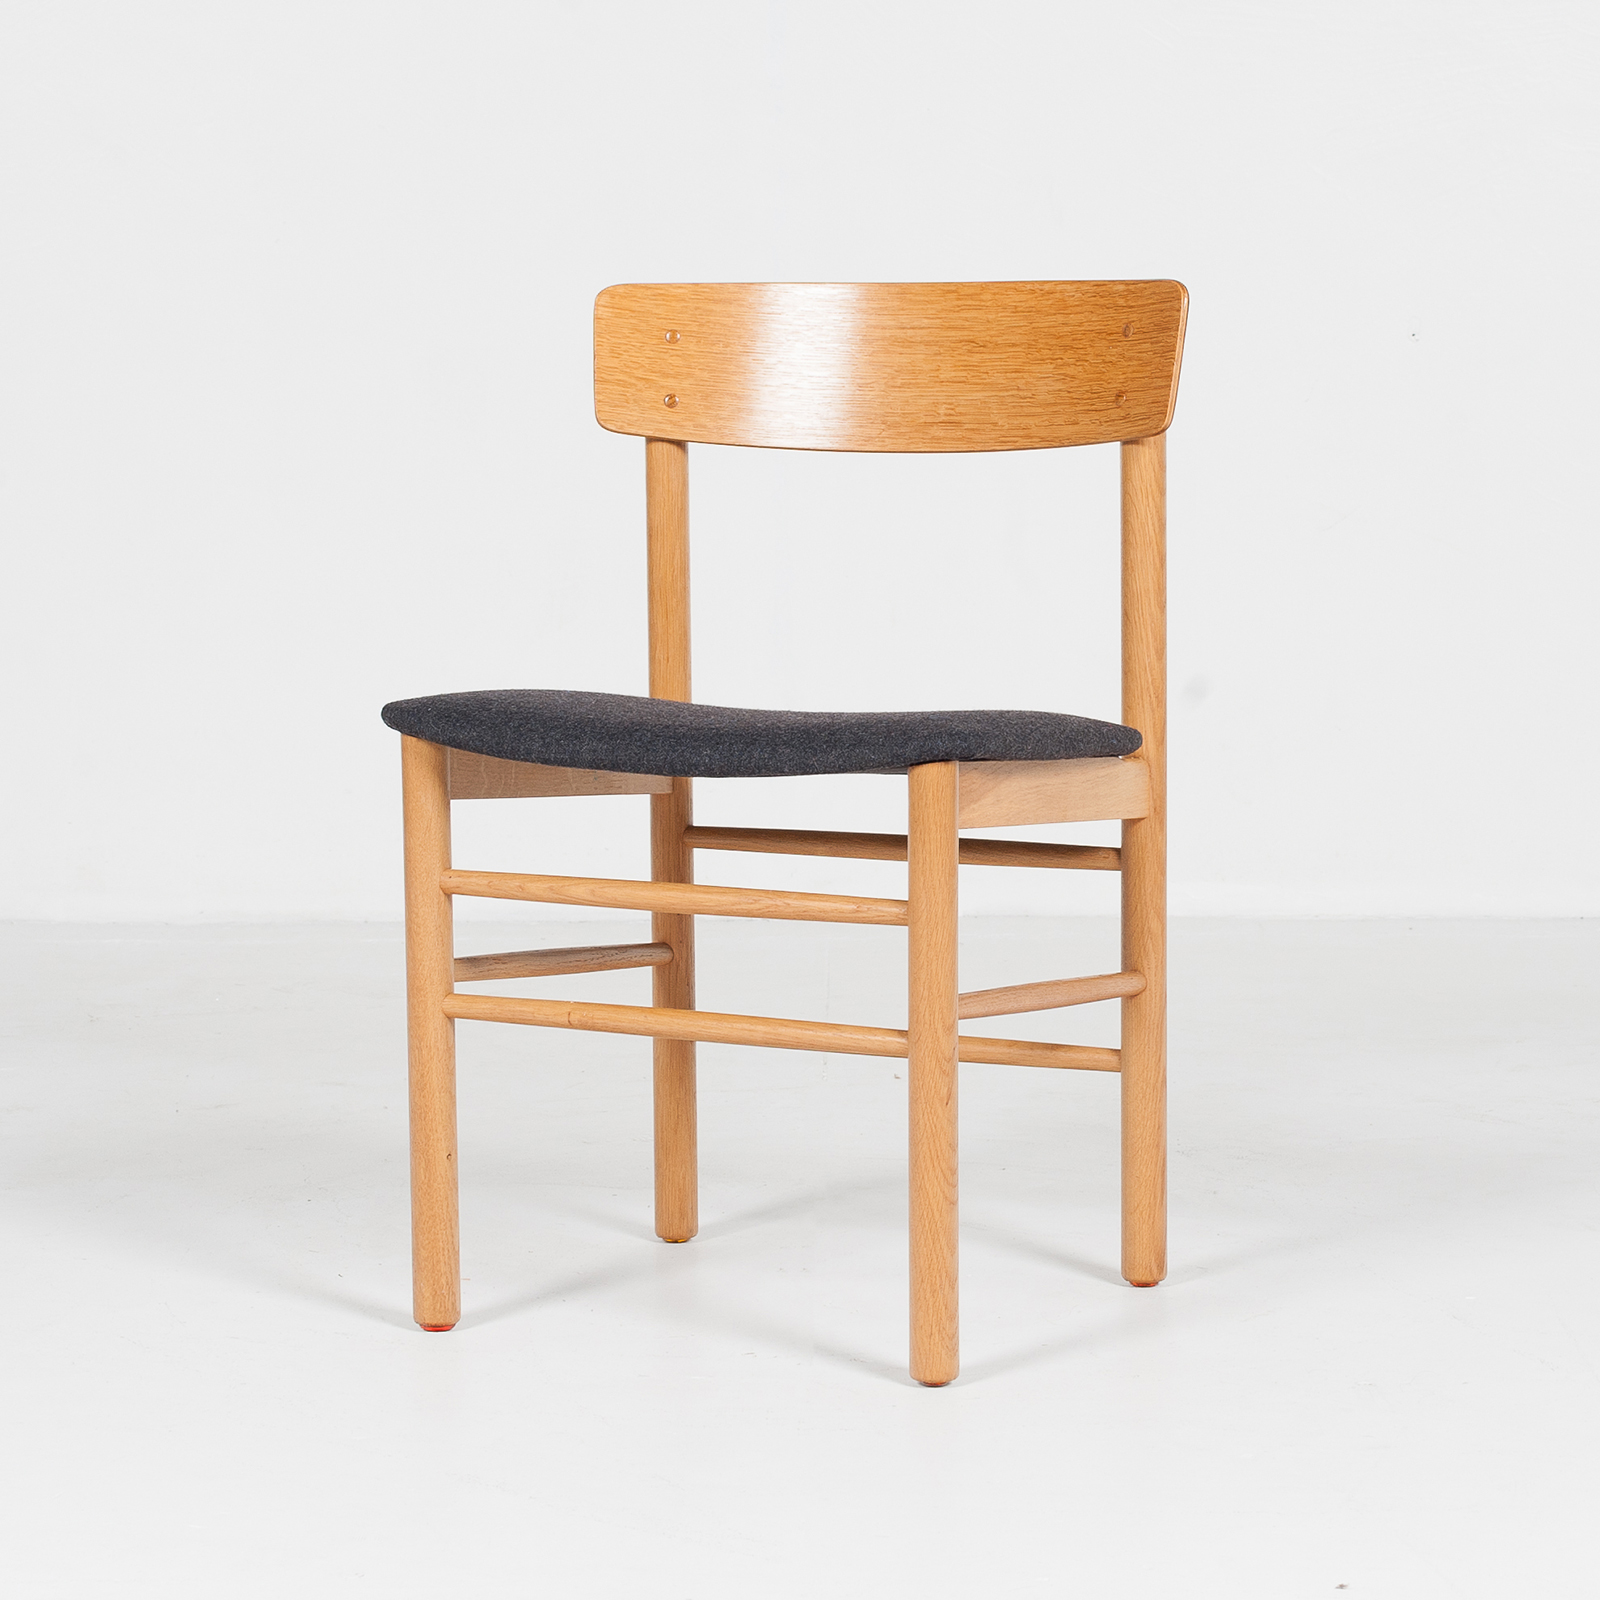 Set Of 4 Shaker Style Dining Chairs By Farstrup In Oak, 1960s, Denmark64